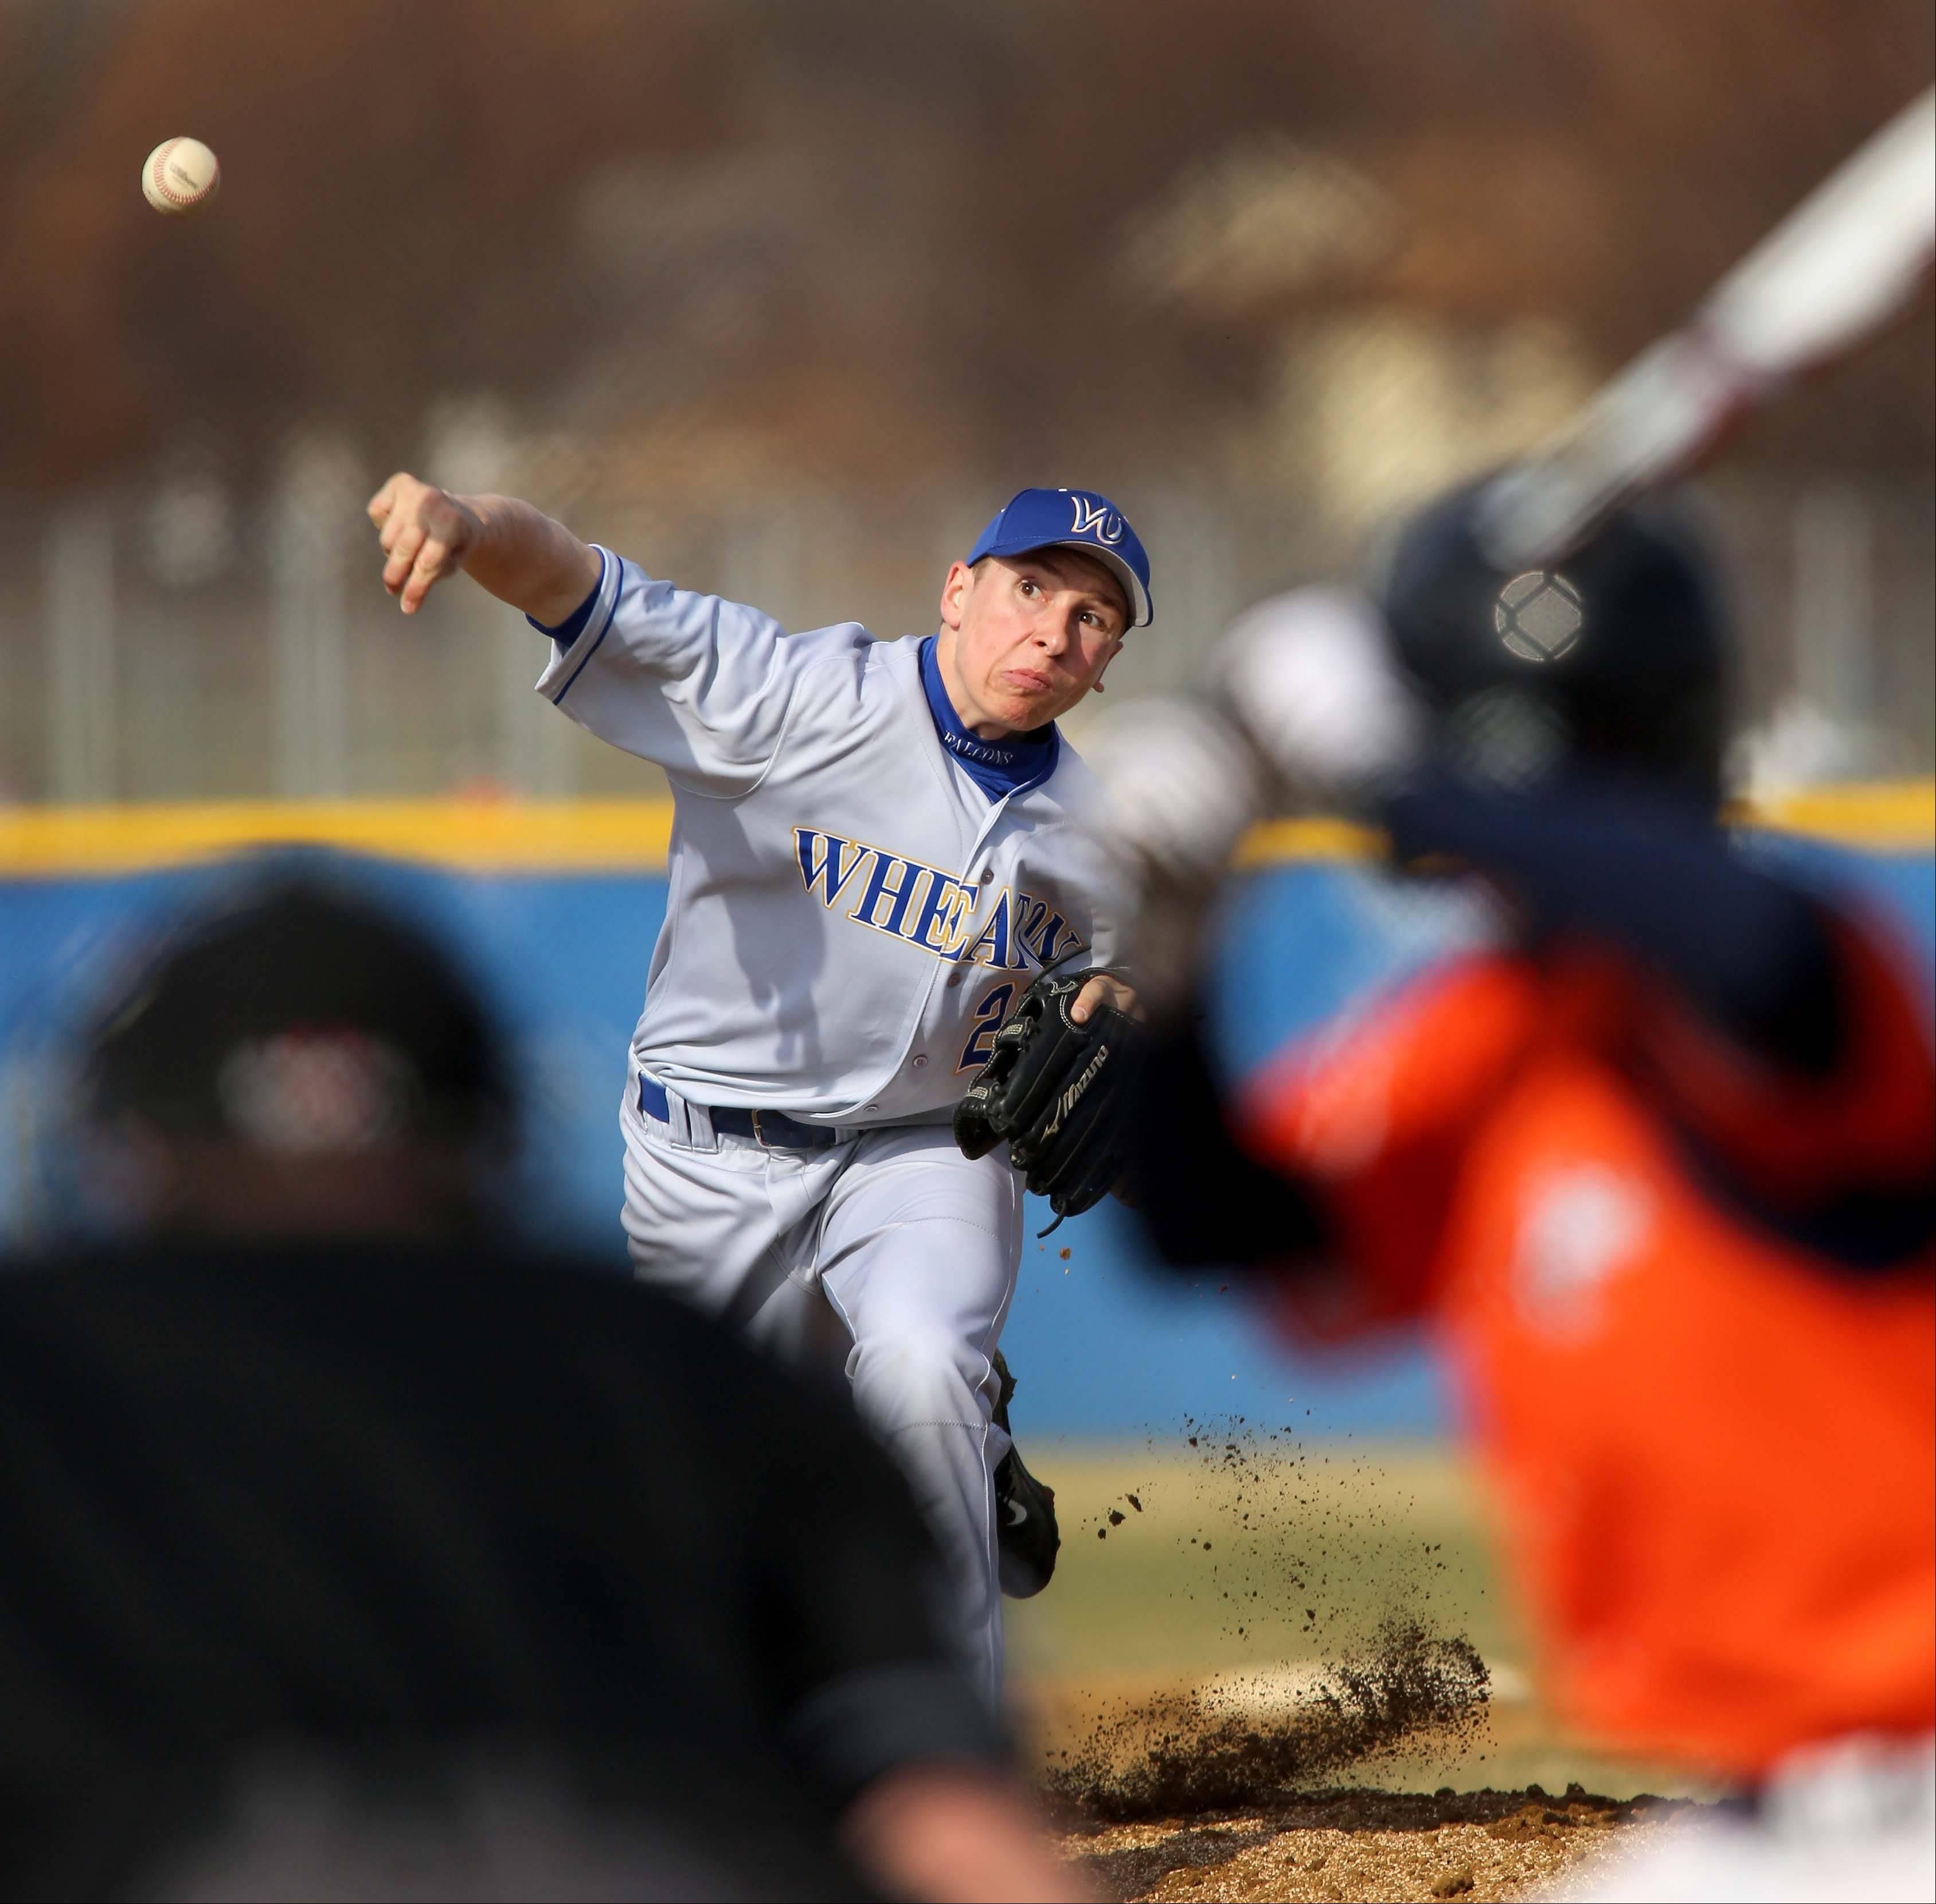 Wheaton North gets good start in DVC play